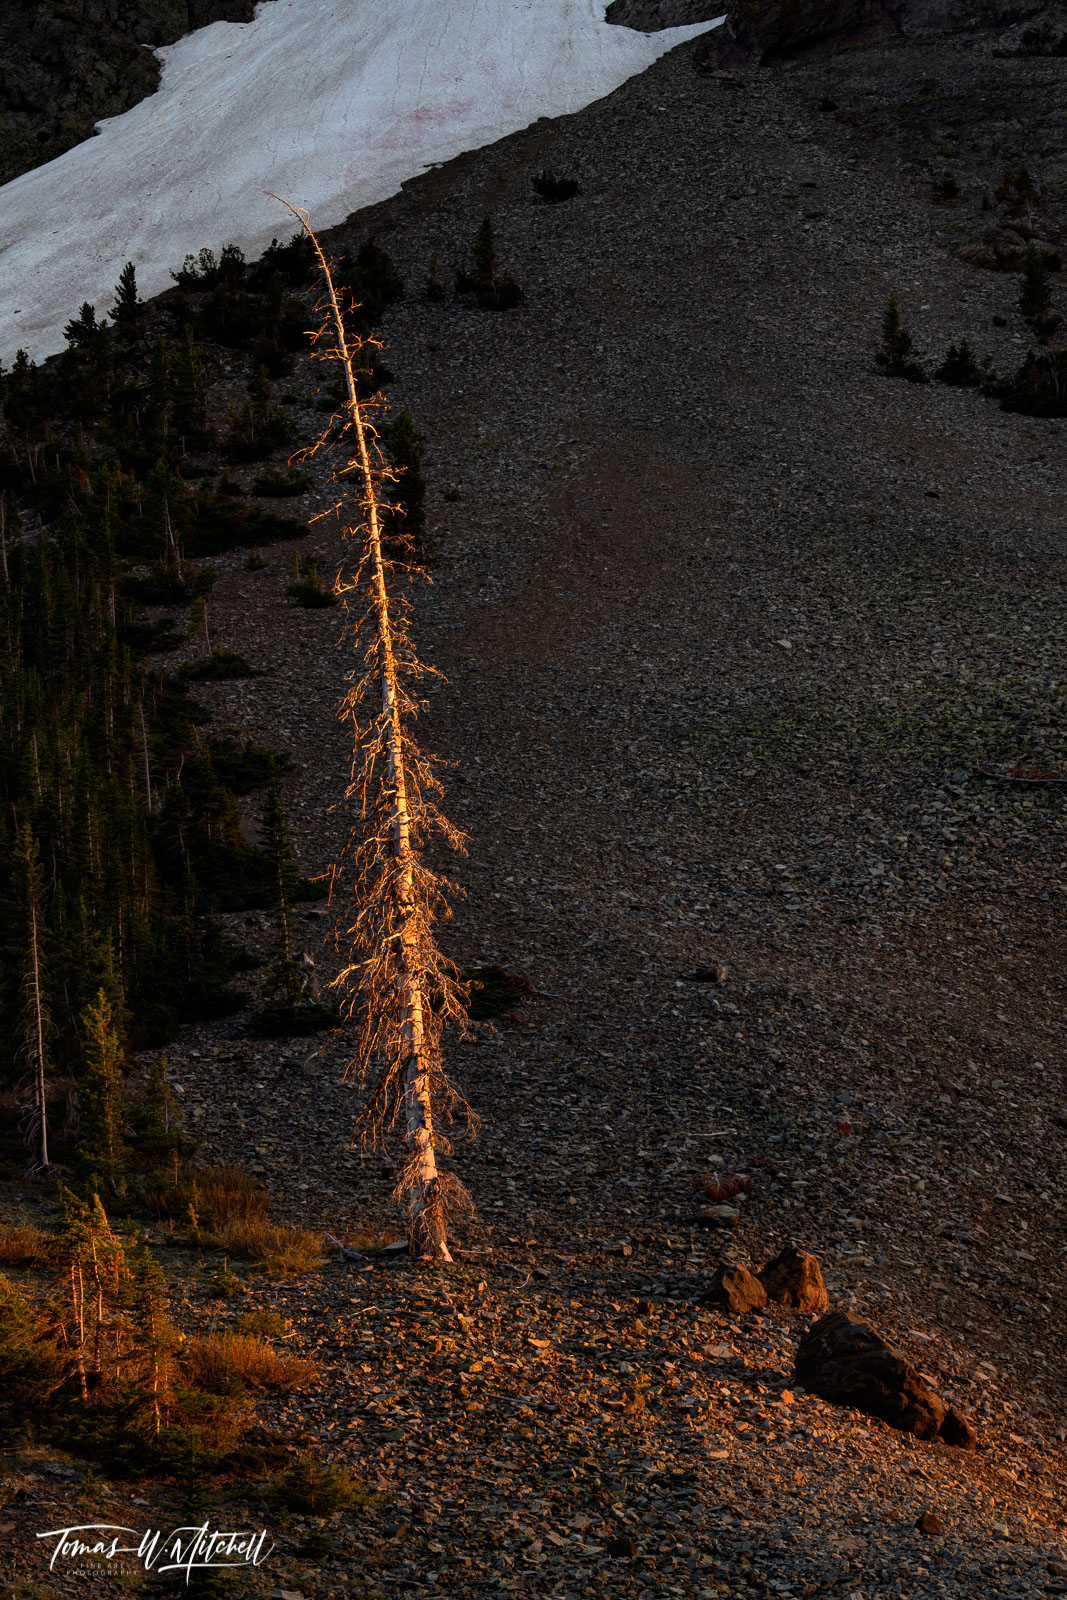 yellowstone national park, wyoming, limited edition, fine art prints, sylvan pass, trees, alpine light, tree, rocks, photo